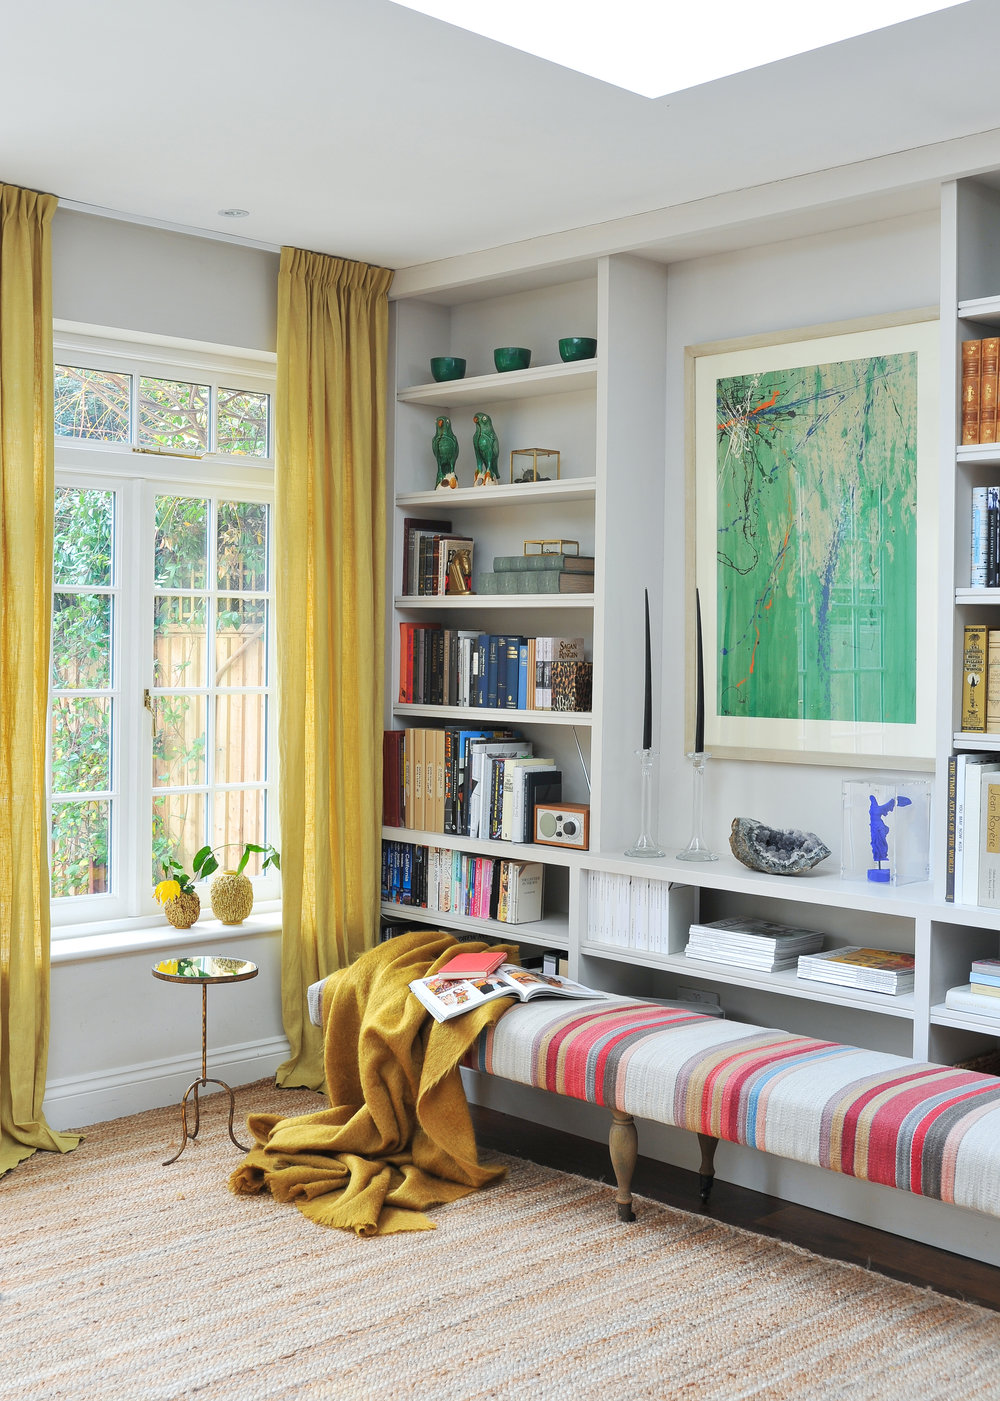 Anna Anna Gyllenkrok interior design in Central London